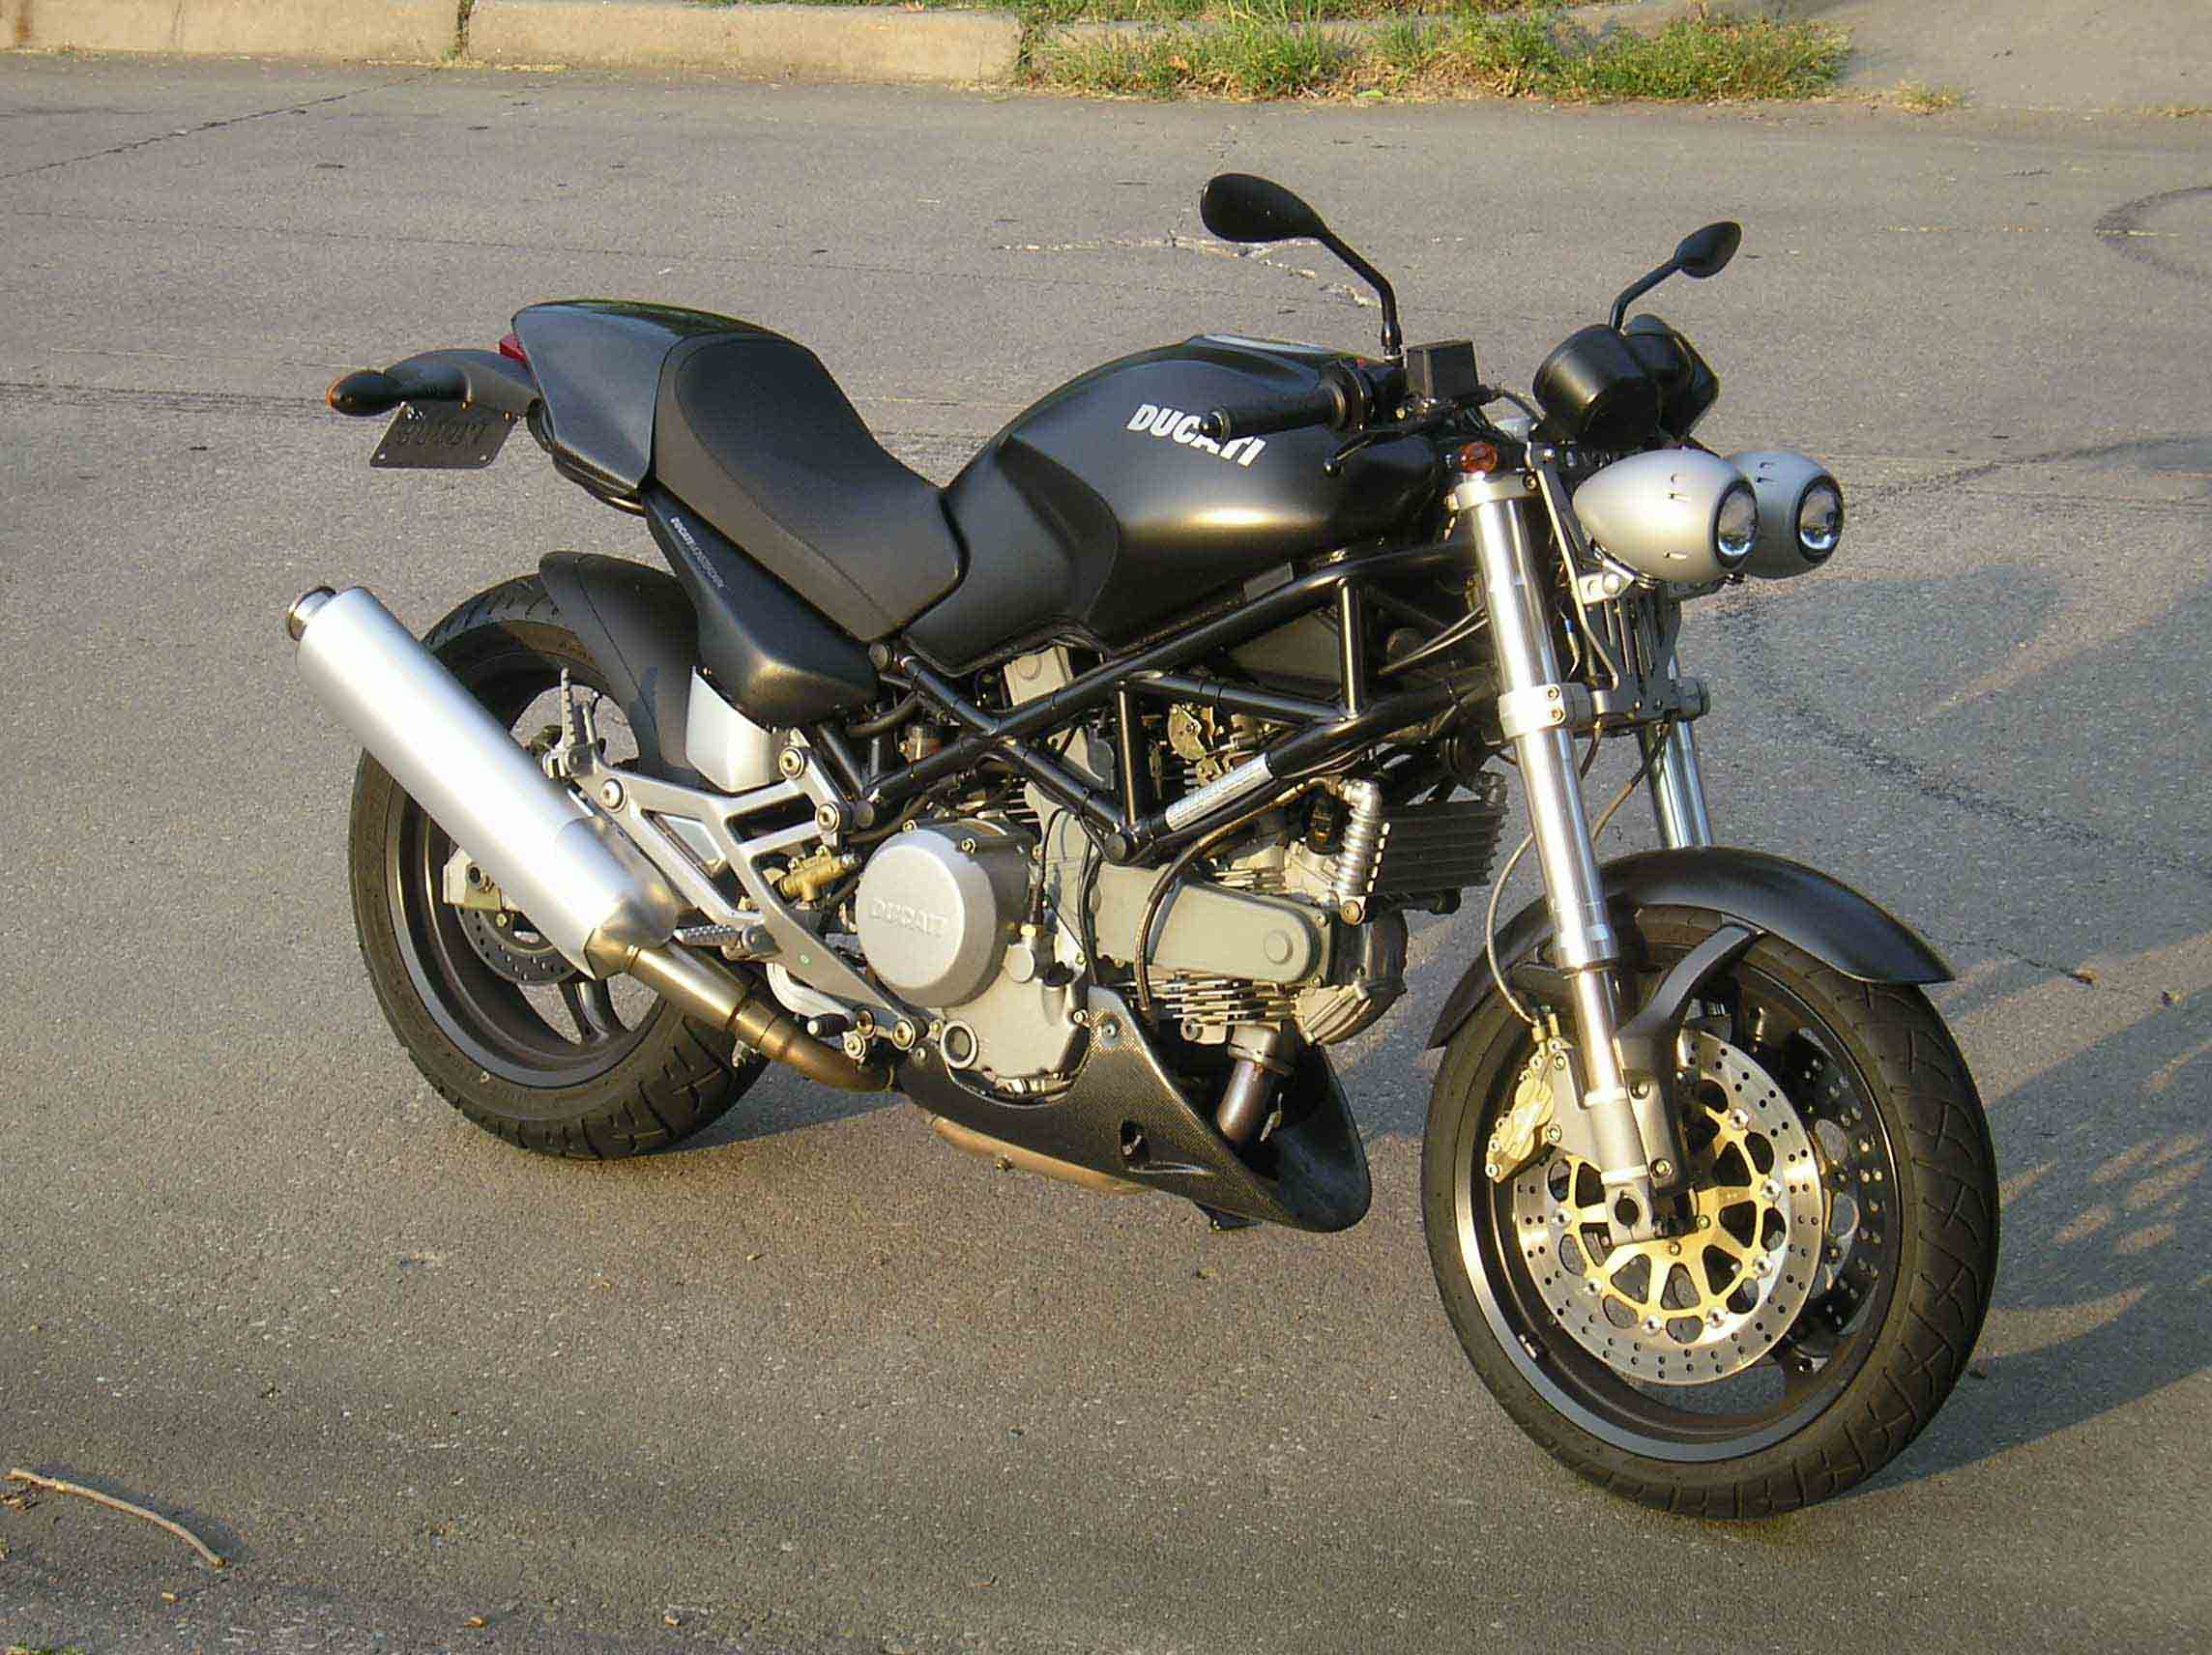 Diagram Kawasaki Wiring Diagrams Ducati Monster Wiring Diagram Ducati